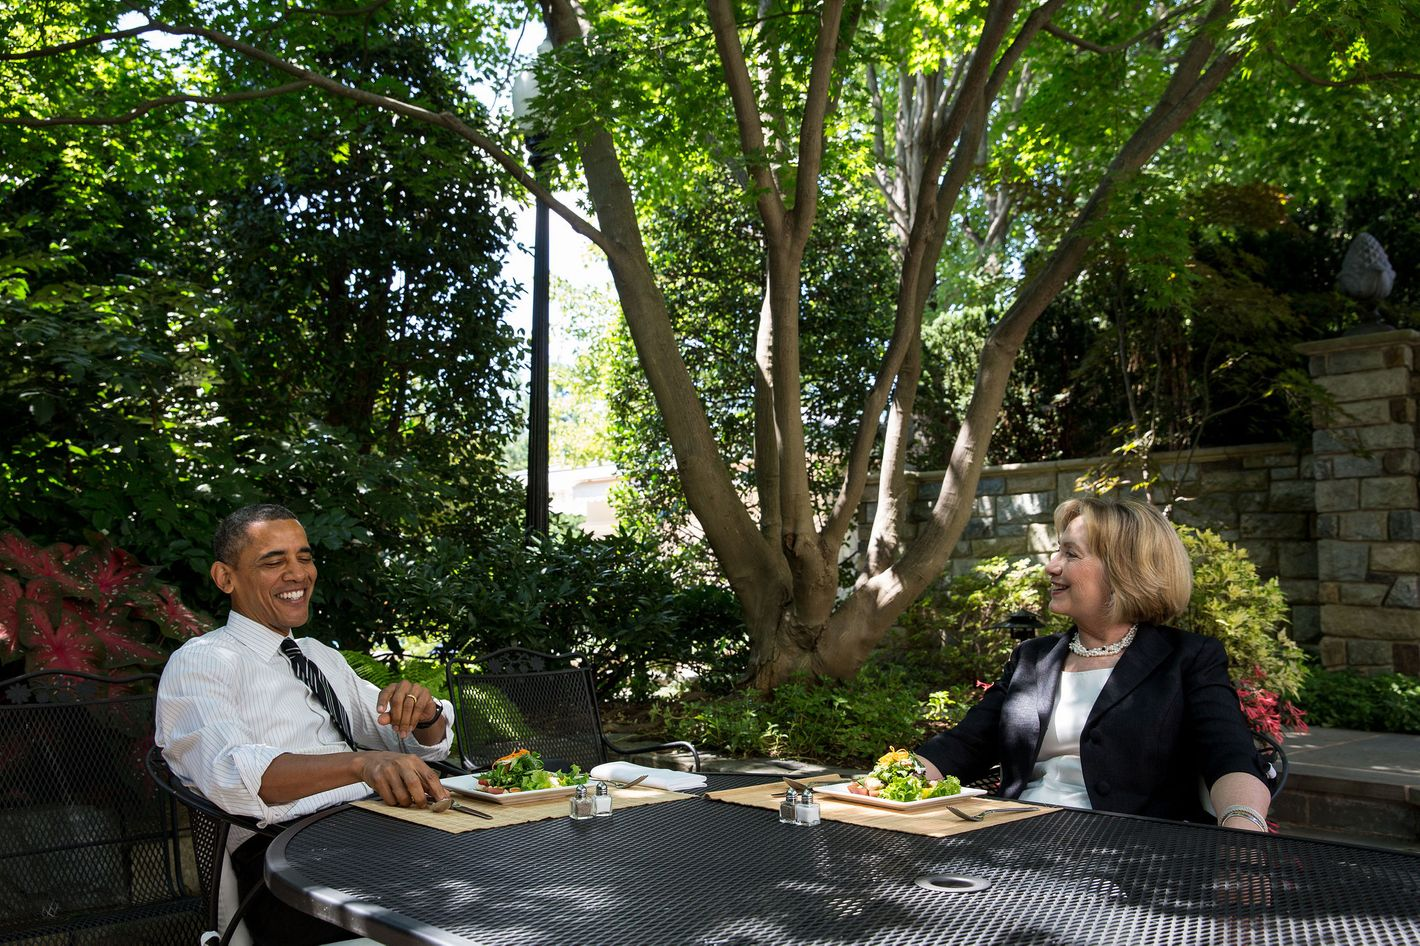 Overyzing A Photo Of President And Hillary Clinton Eating Lunch